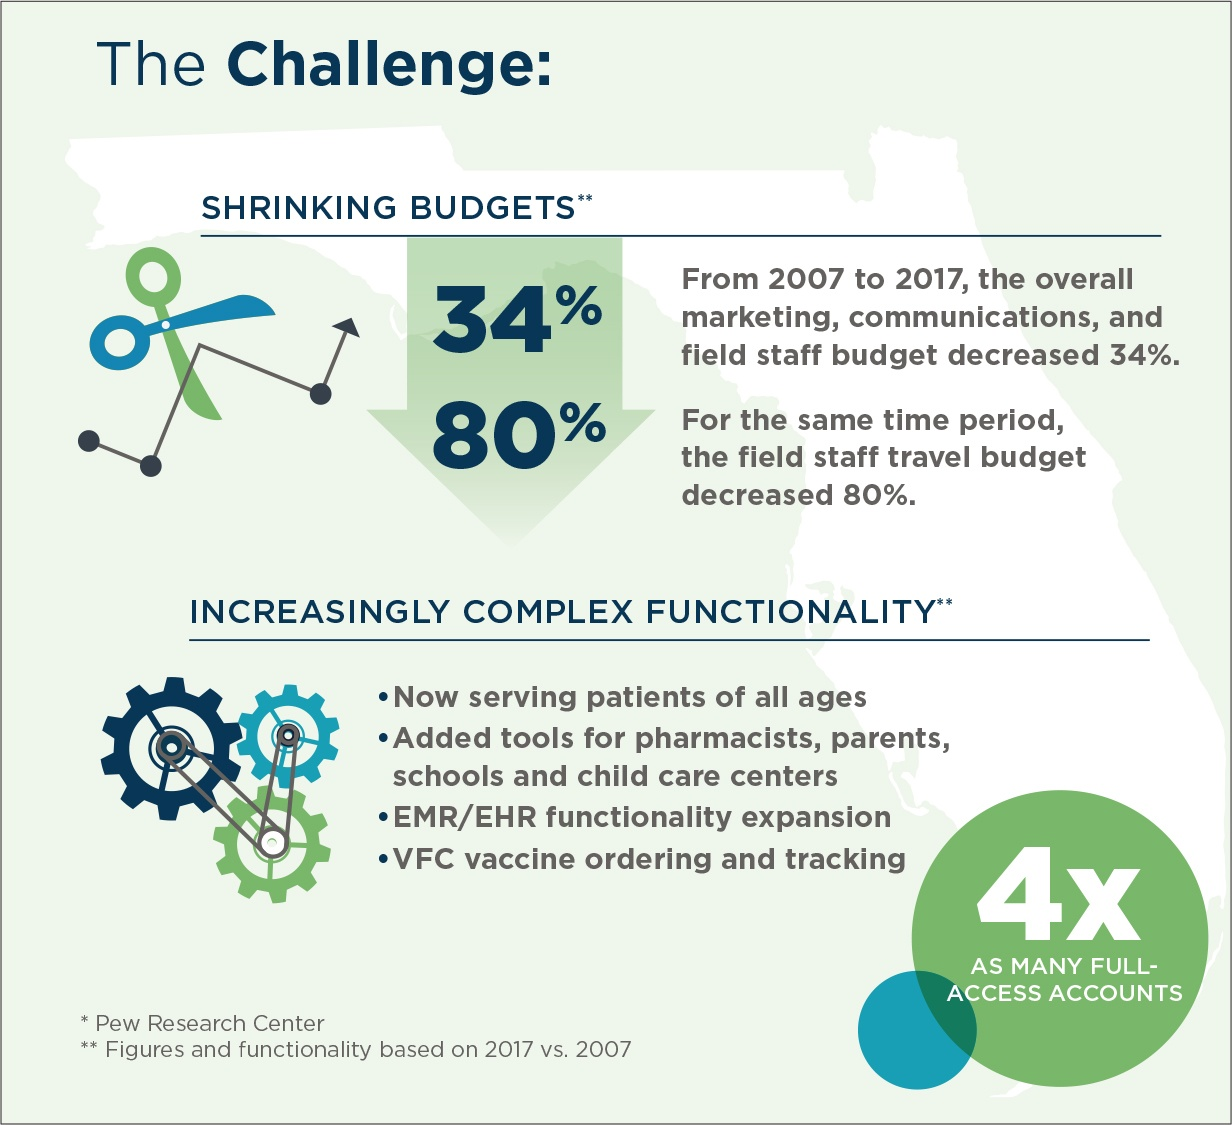 An infographic shows how budgets shrank from 2007 to 2017, but Brunet-García created more functionality.